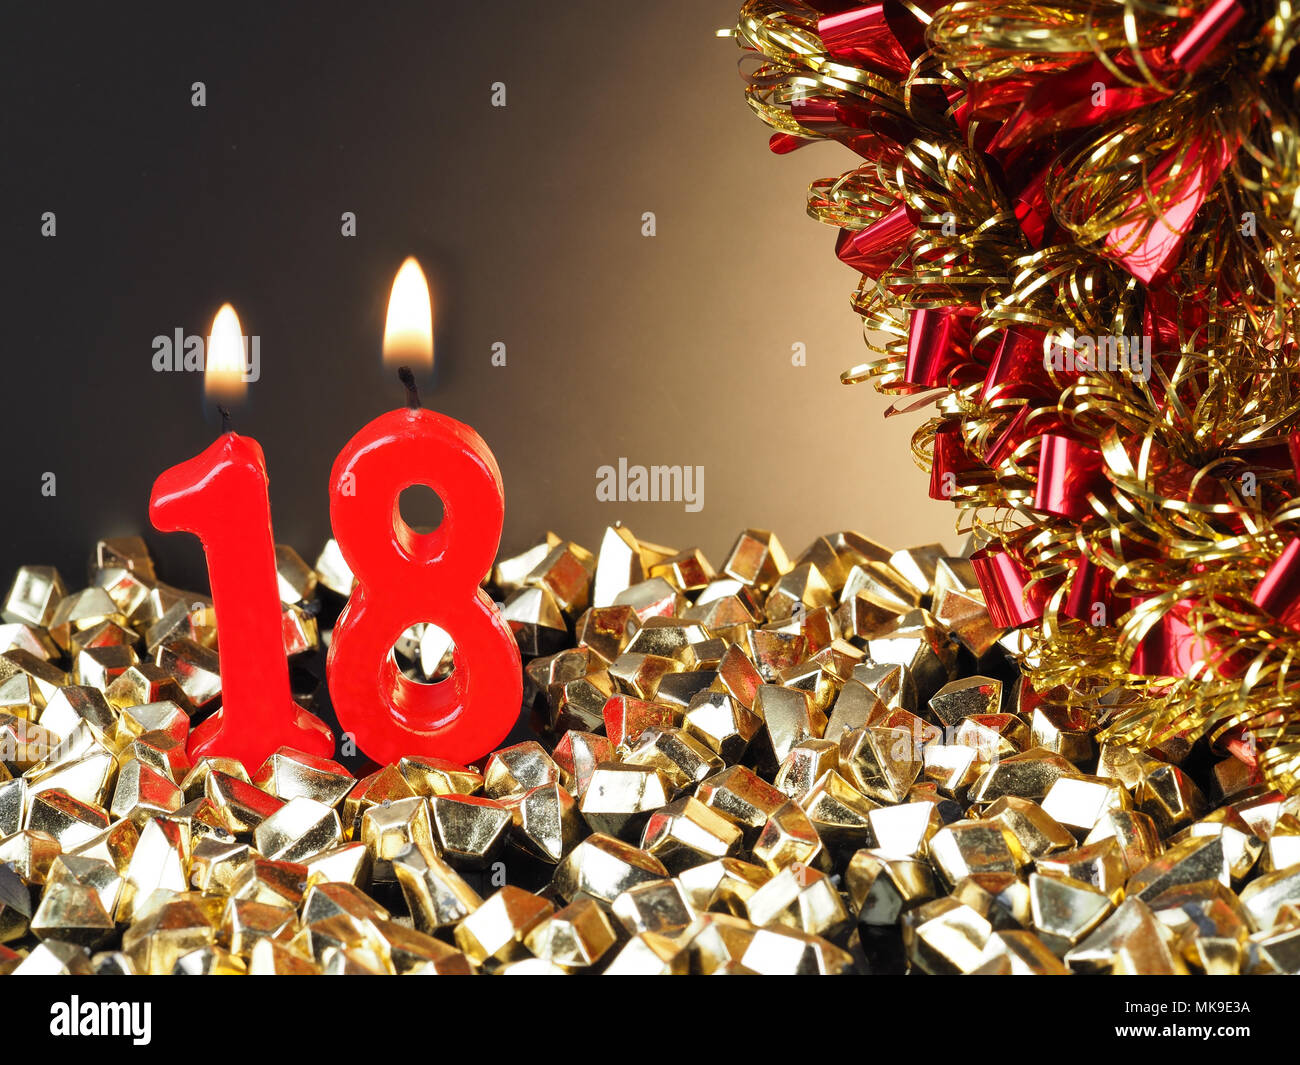 Abstract Background For Birthday Or Anniversary Red Candles Showing Nr 18